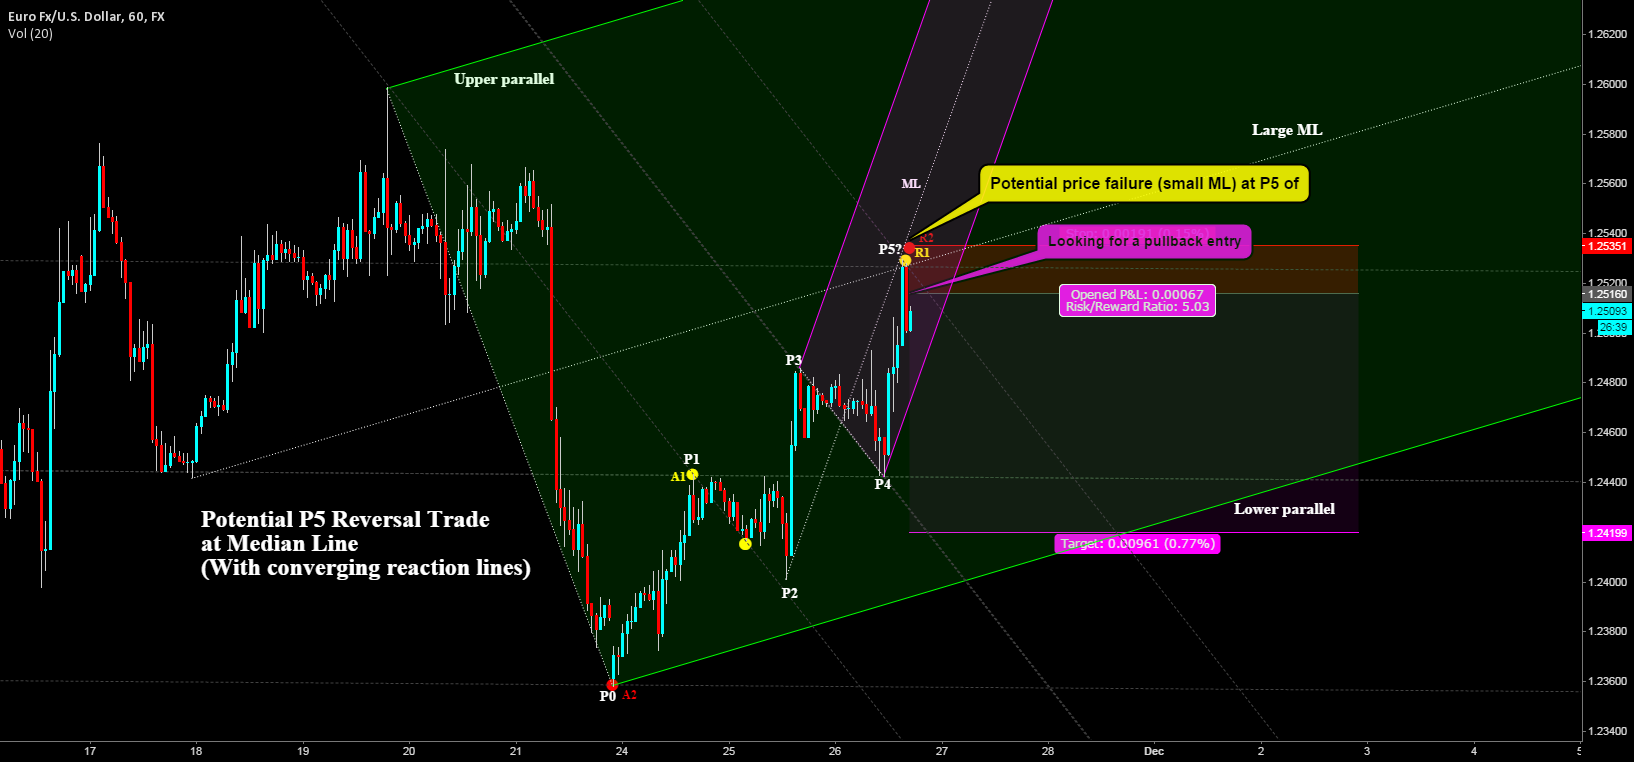 Potential P5 Reversal Trade at Median Line